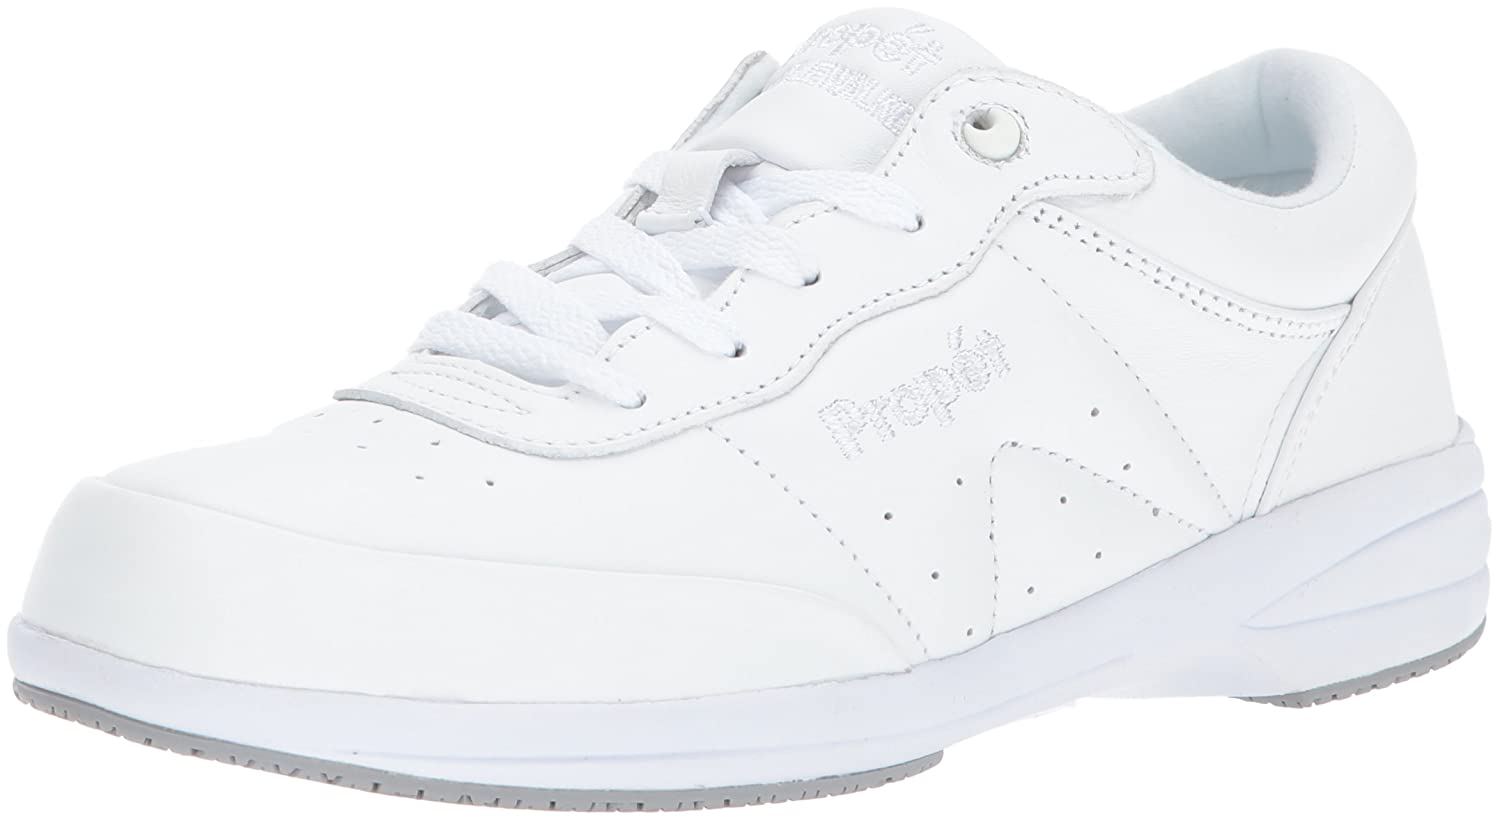 Propet Women's Washable Walker Sneaker B01MYU9BQ4 11 W US|Sr White